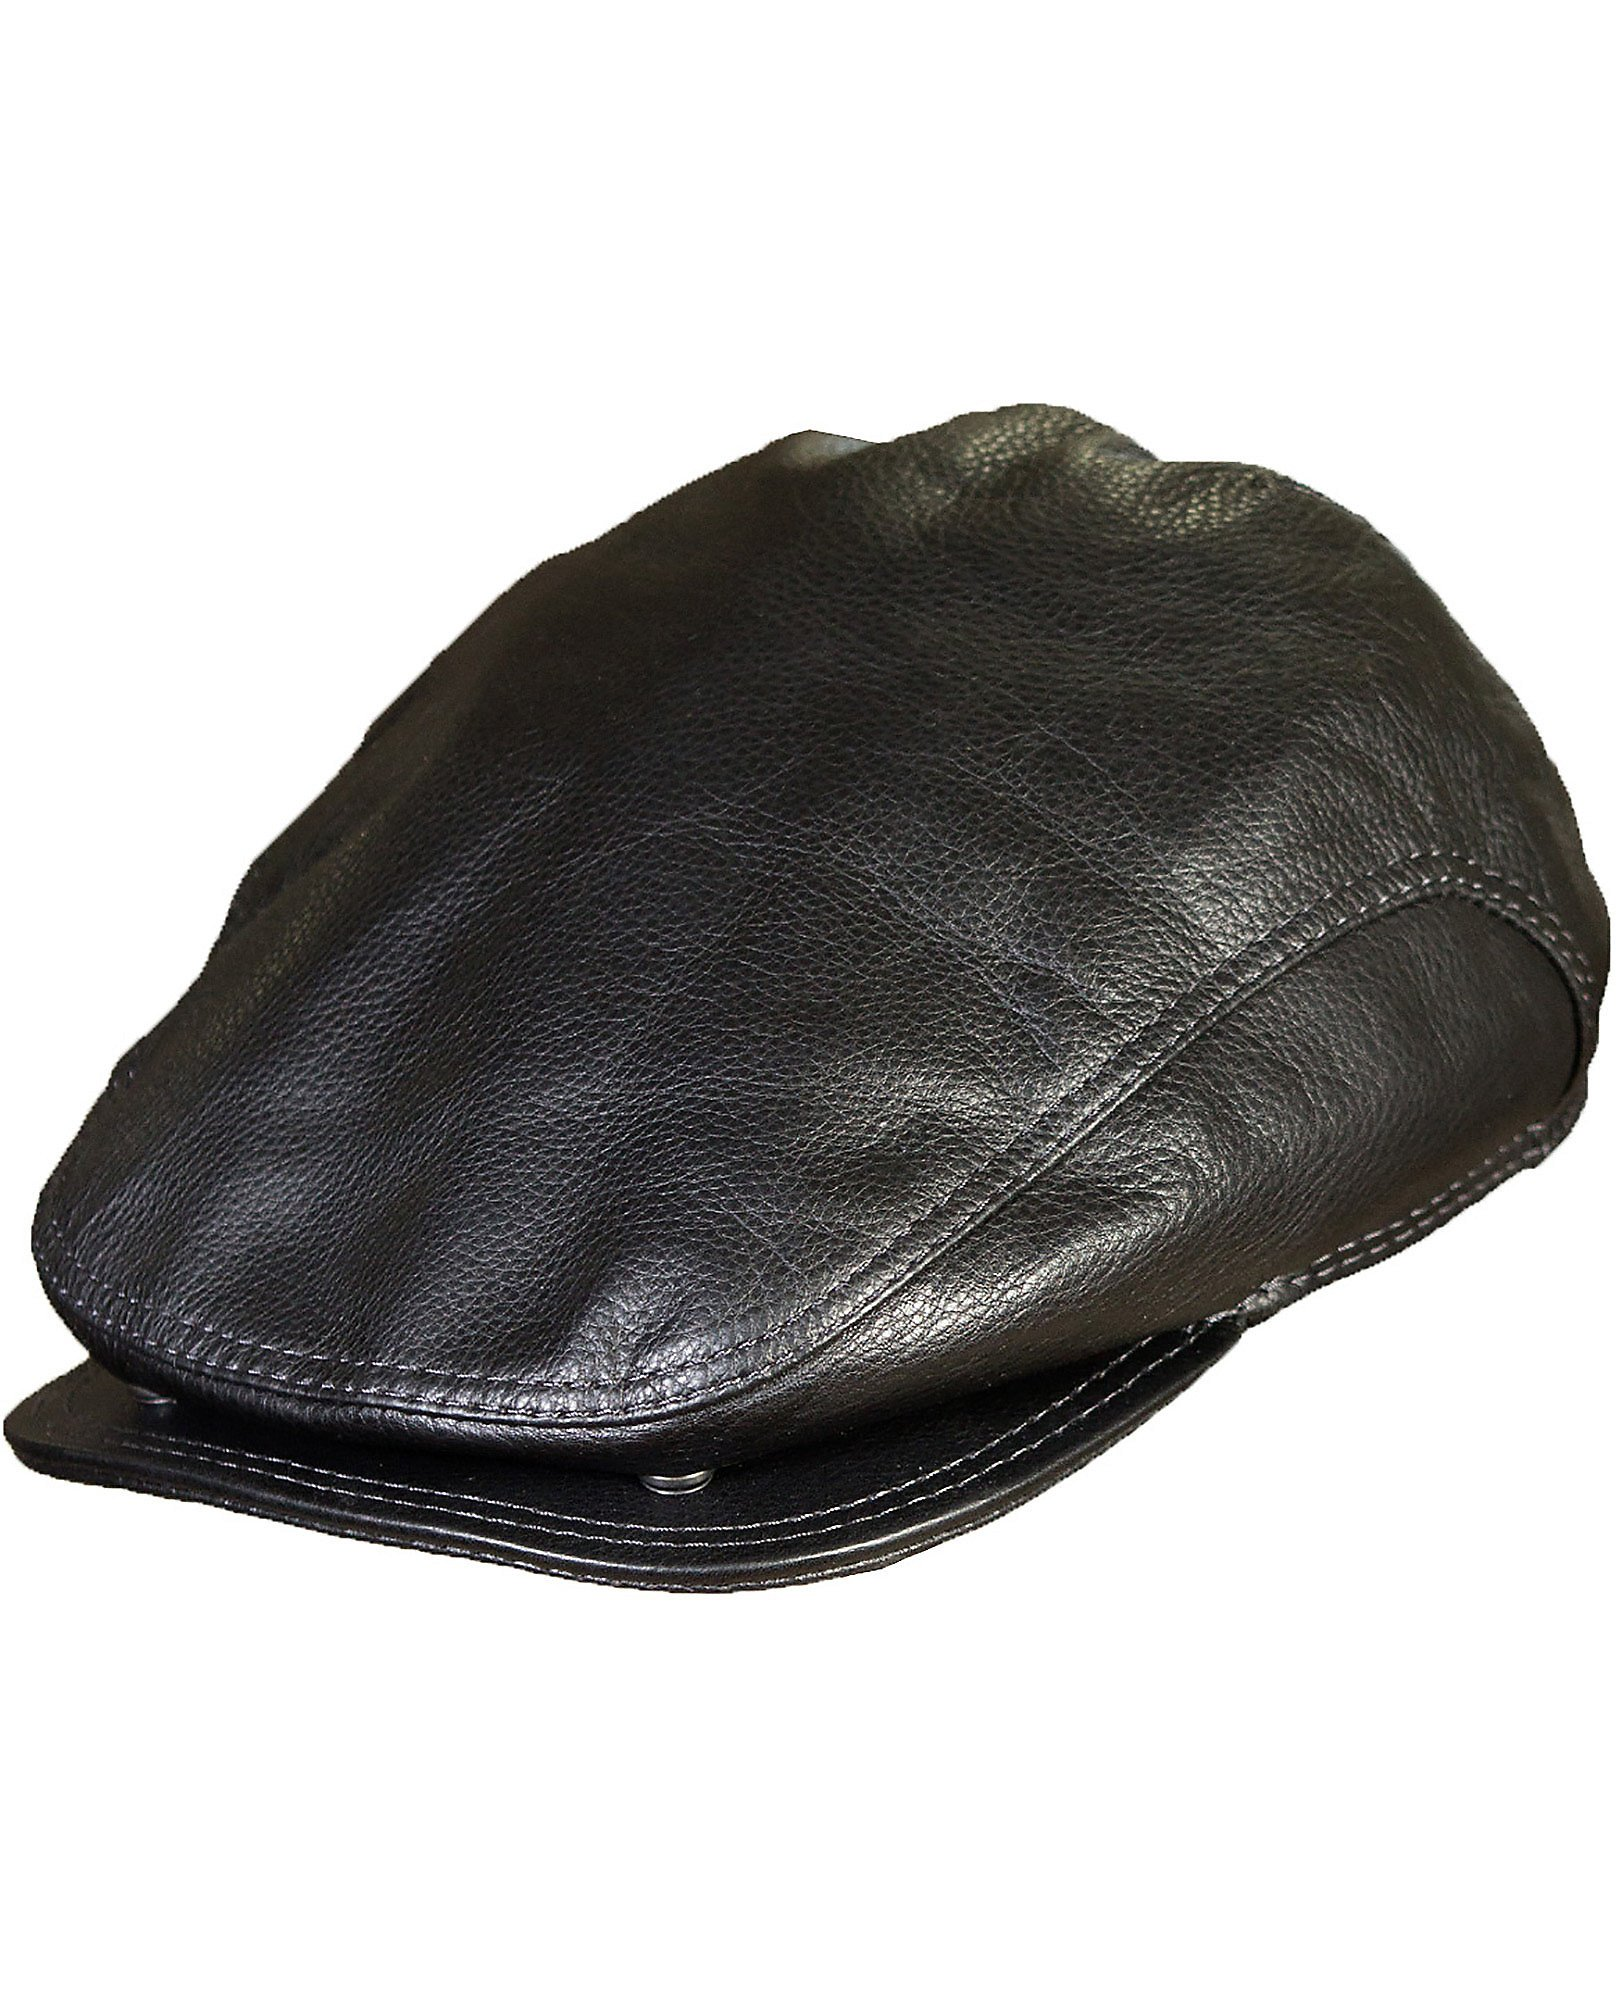 Overland Sheepskin Co Allen Leather IVY Cap